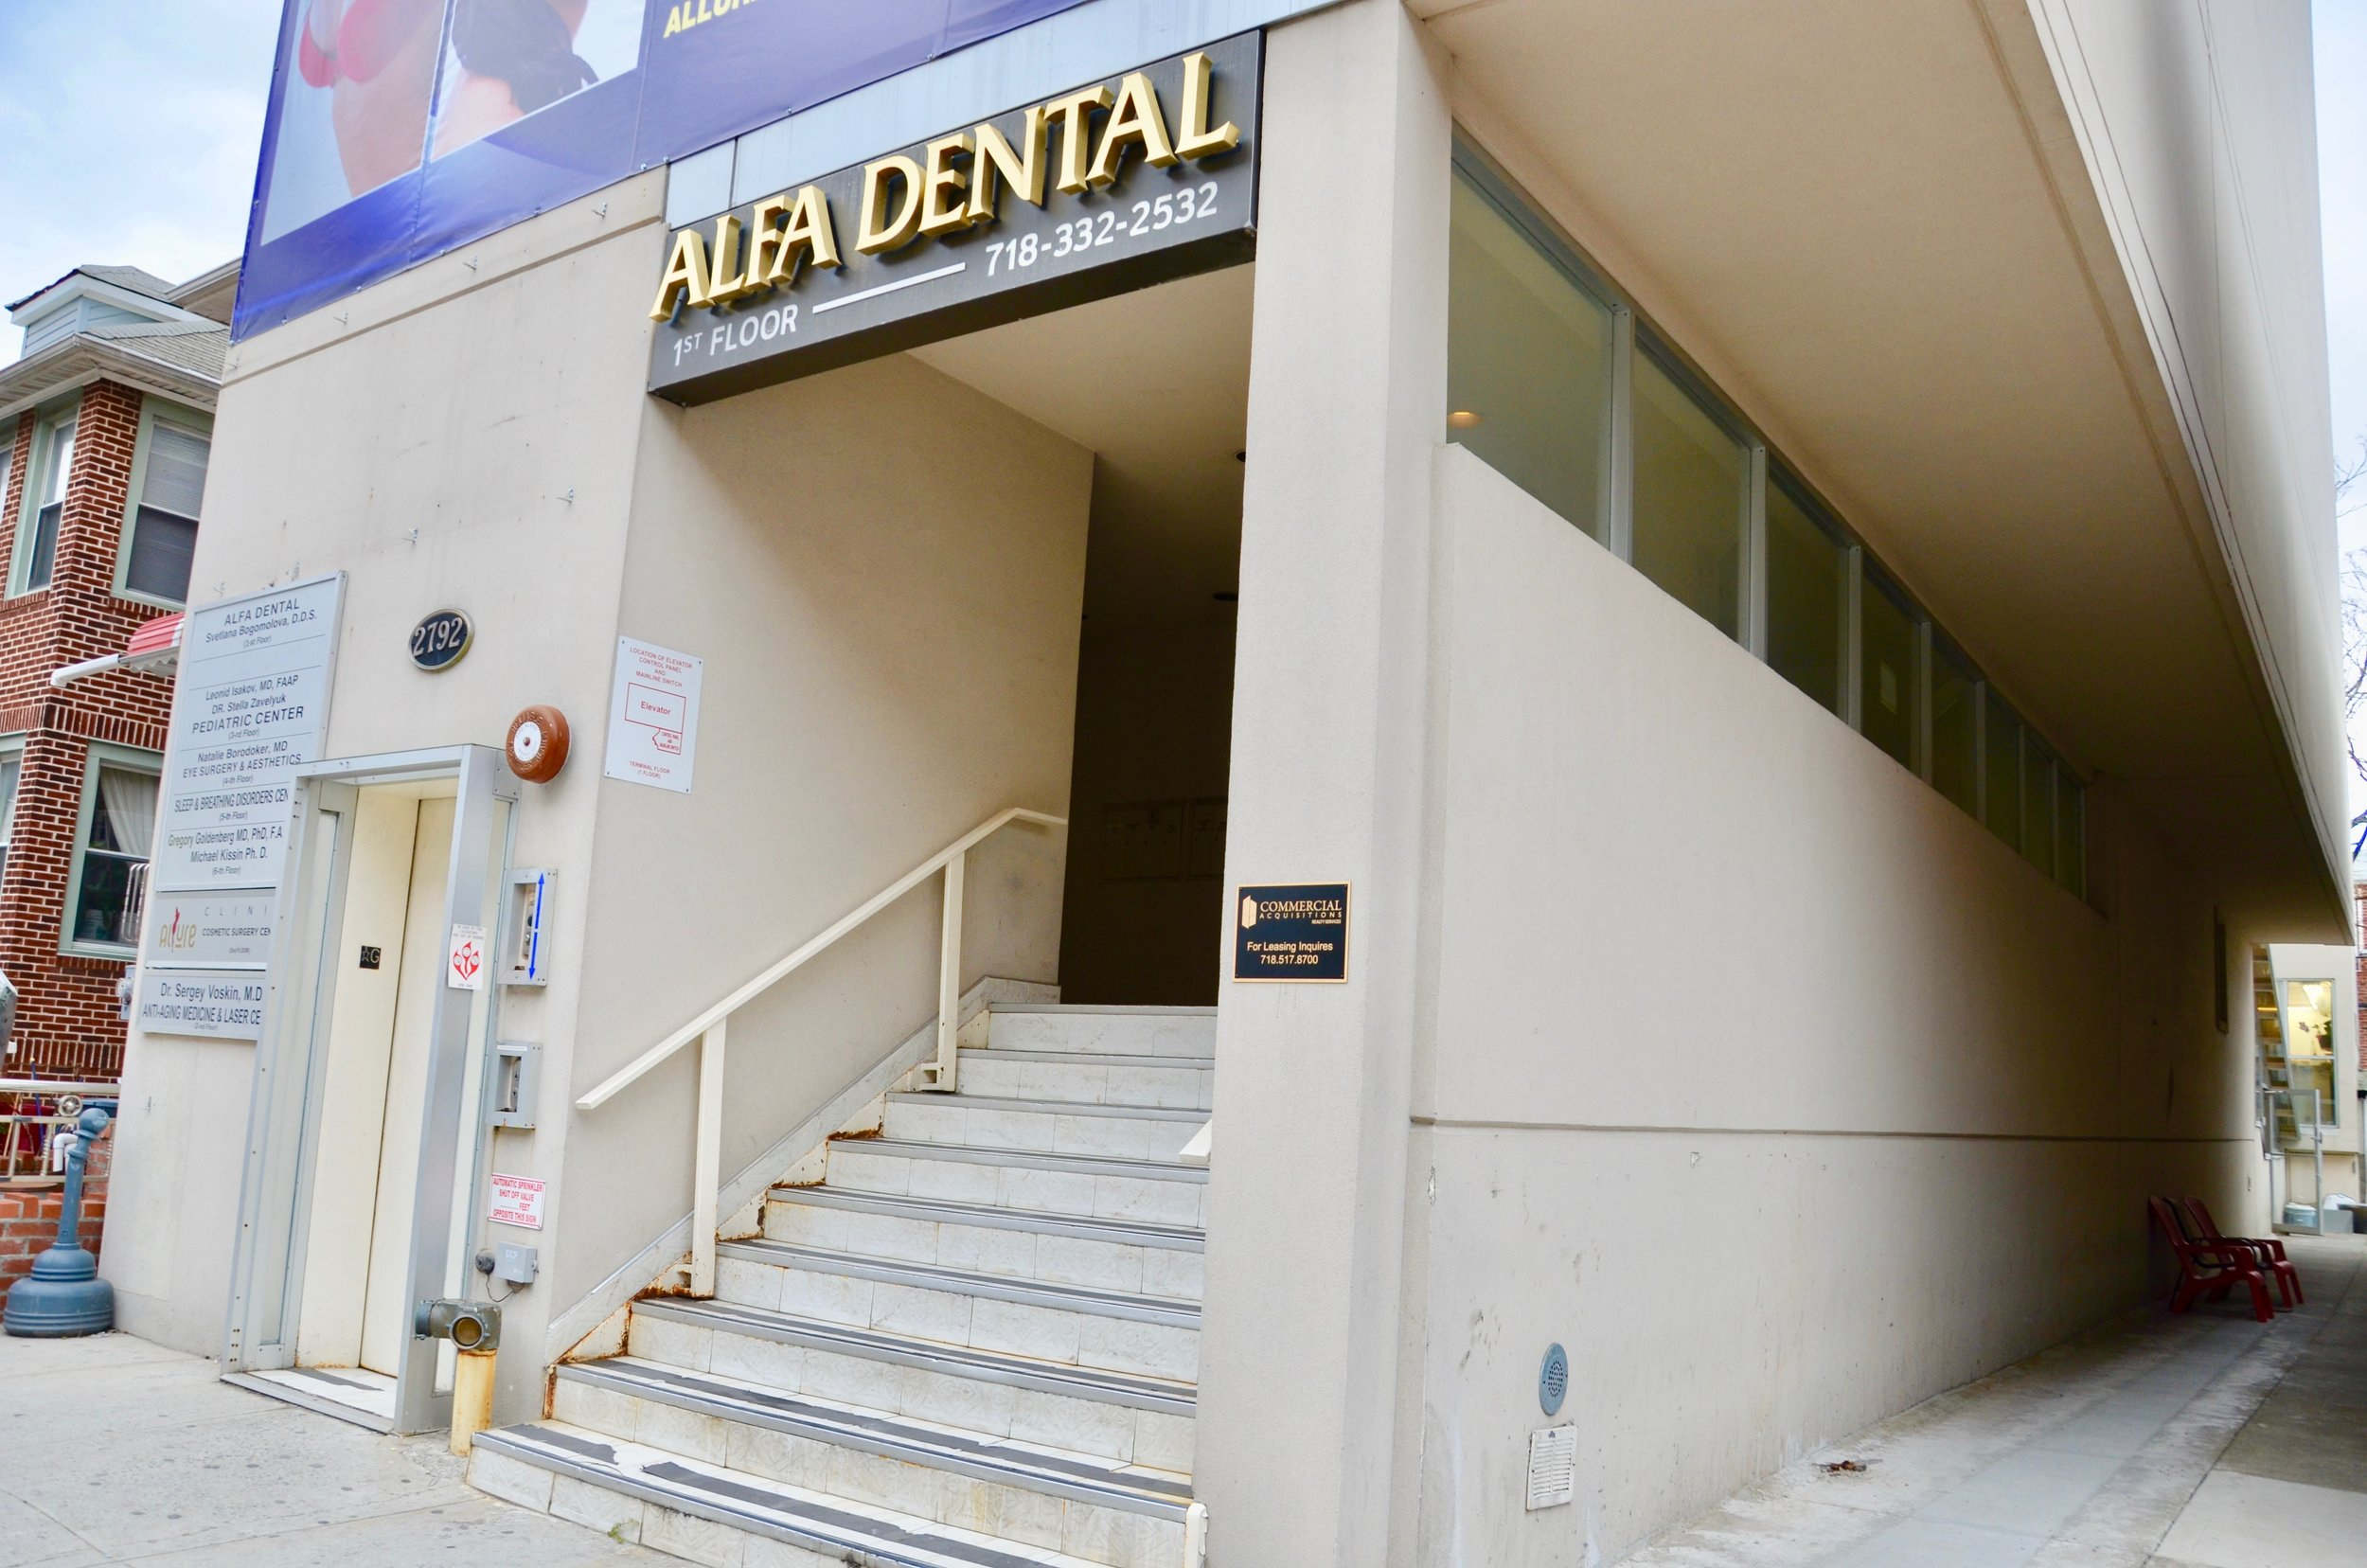 Welcome to Alfa Dental, where your smile is in capable hands